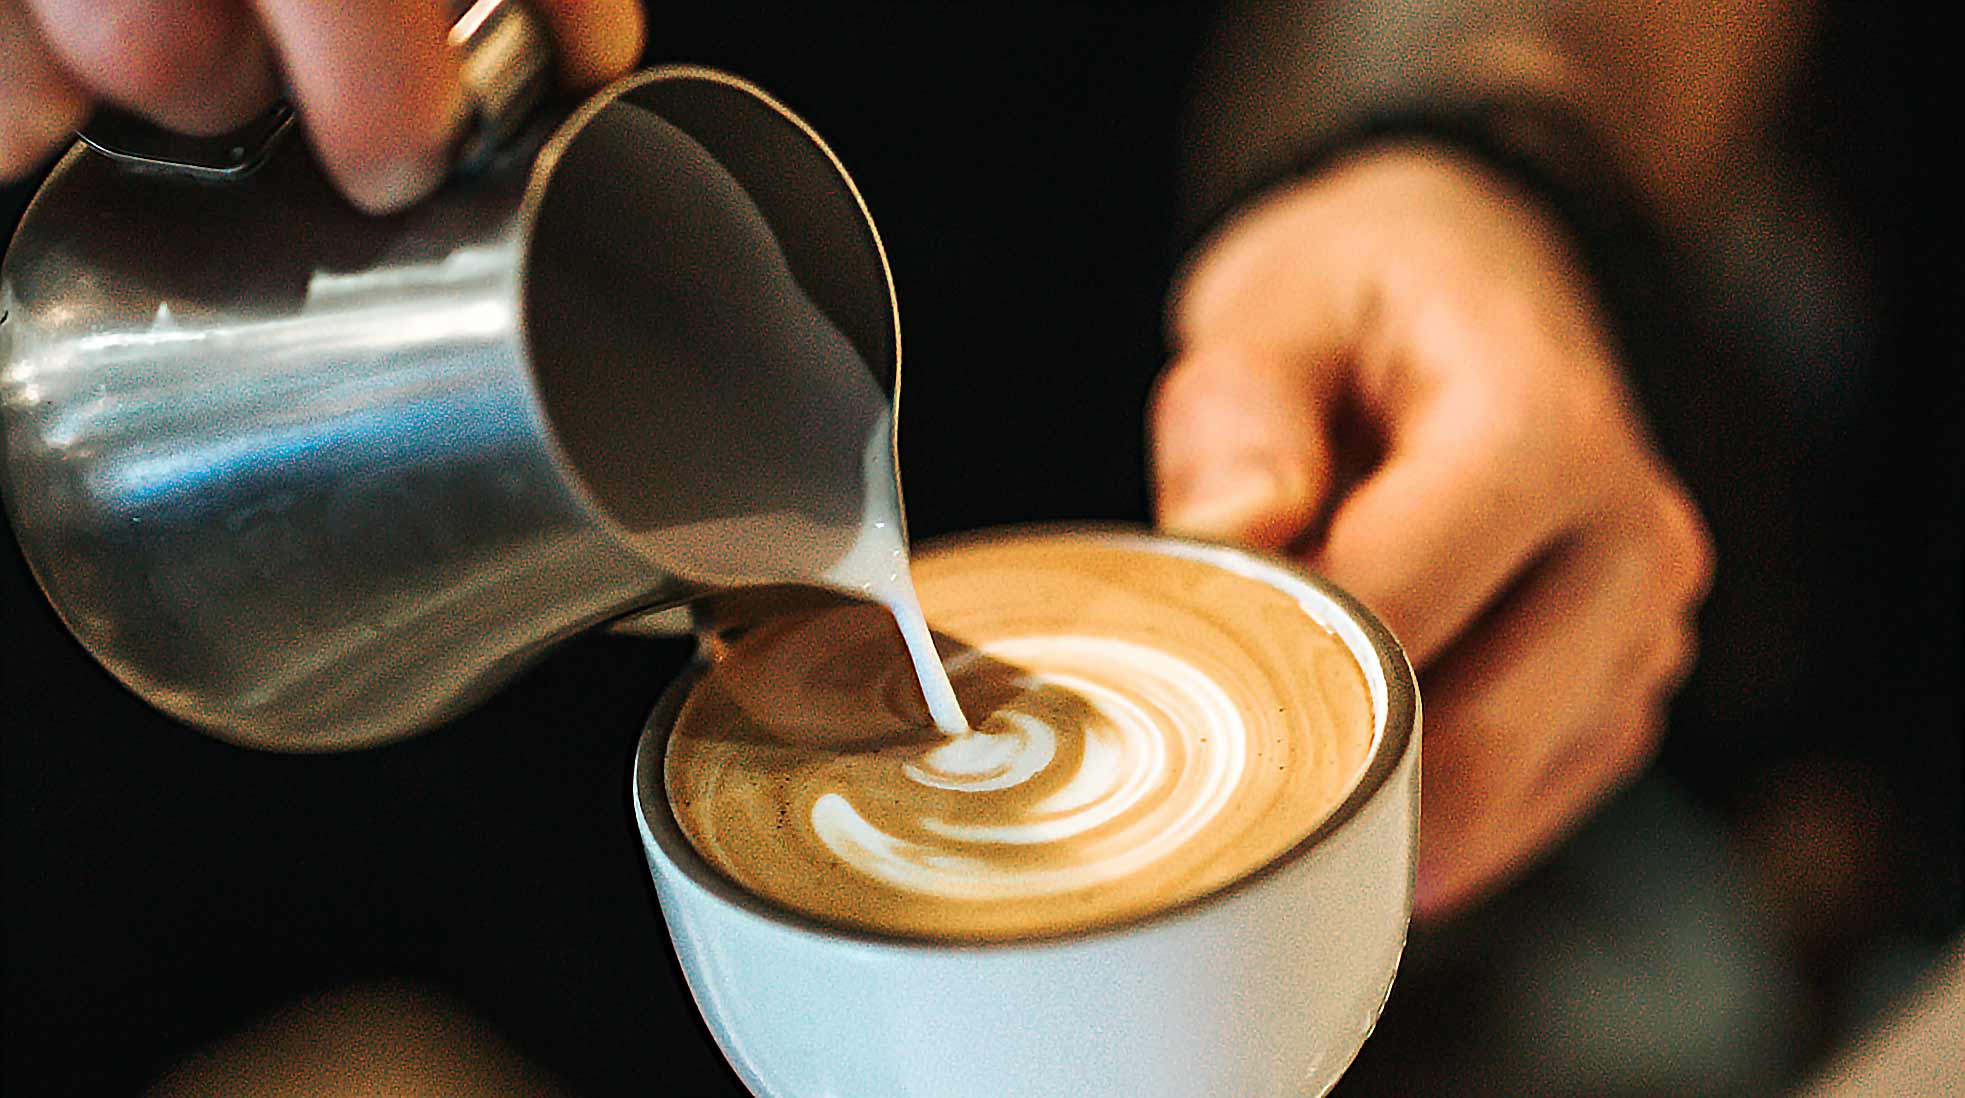 A cappuccino being poured by a barista at a coffee shop